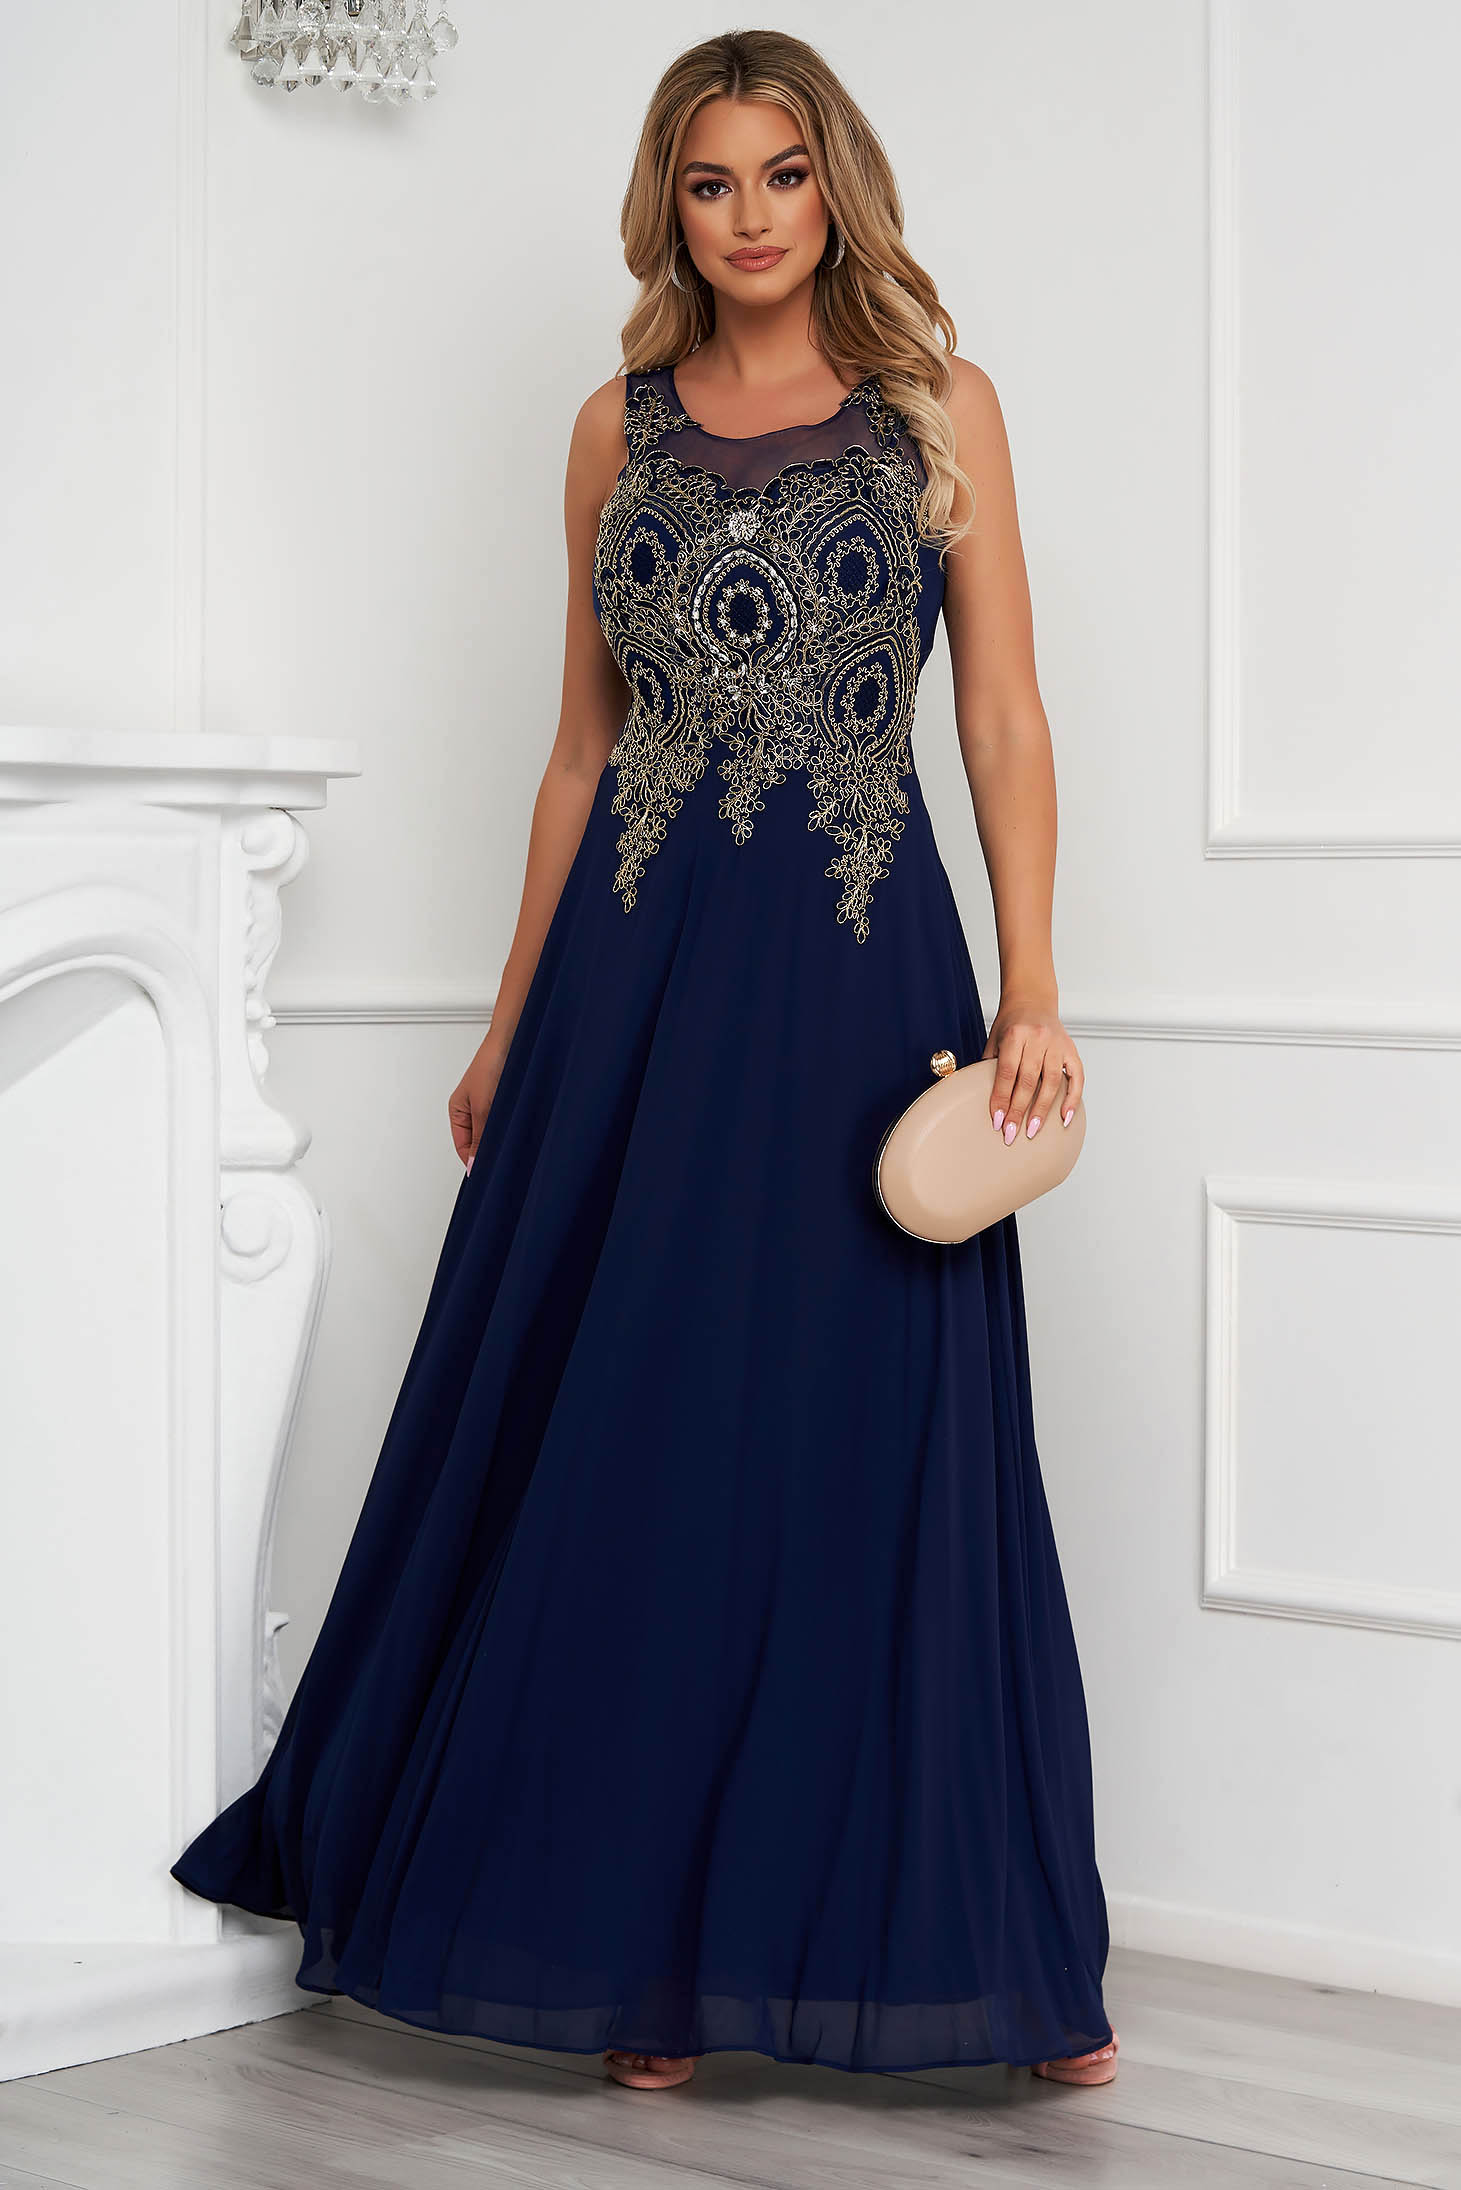 Darkblue dress long occasional cloche from tulle front embroidery with crystal embellished details